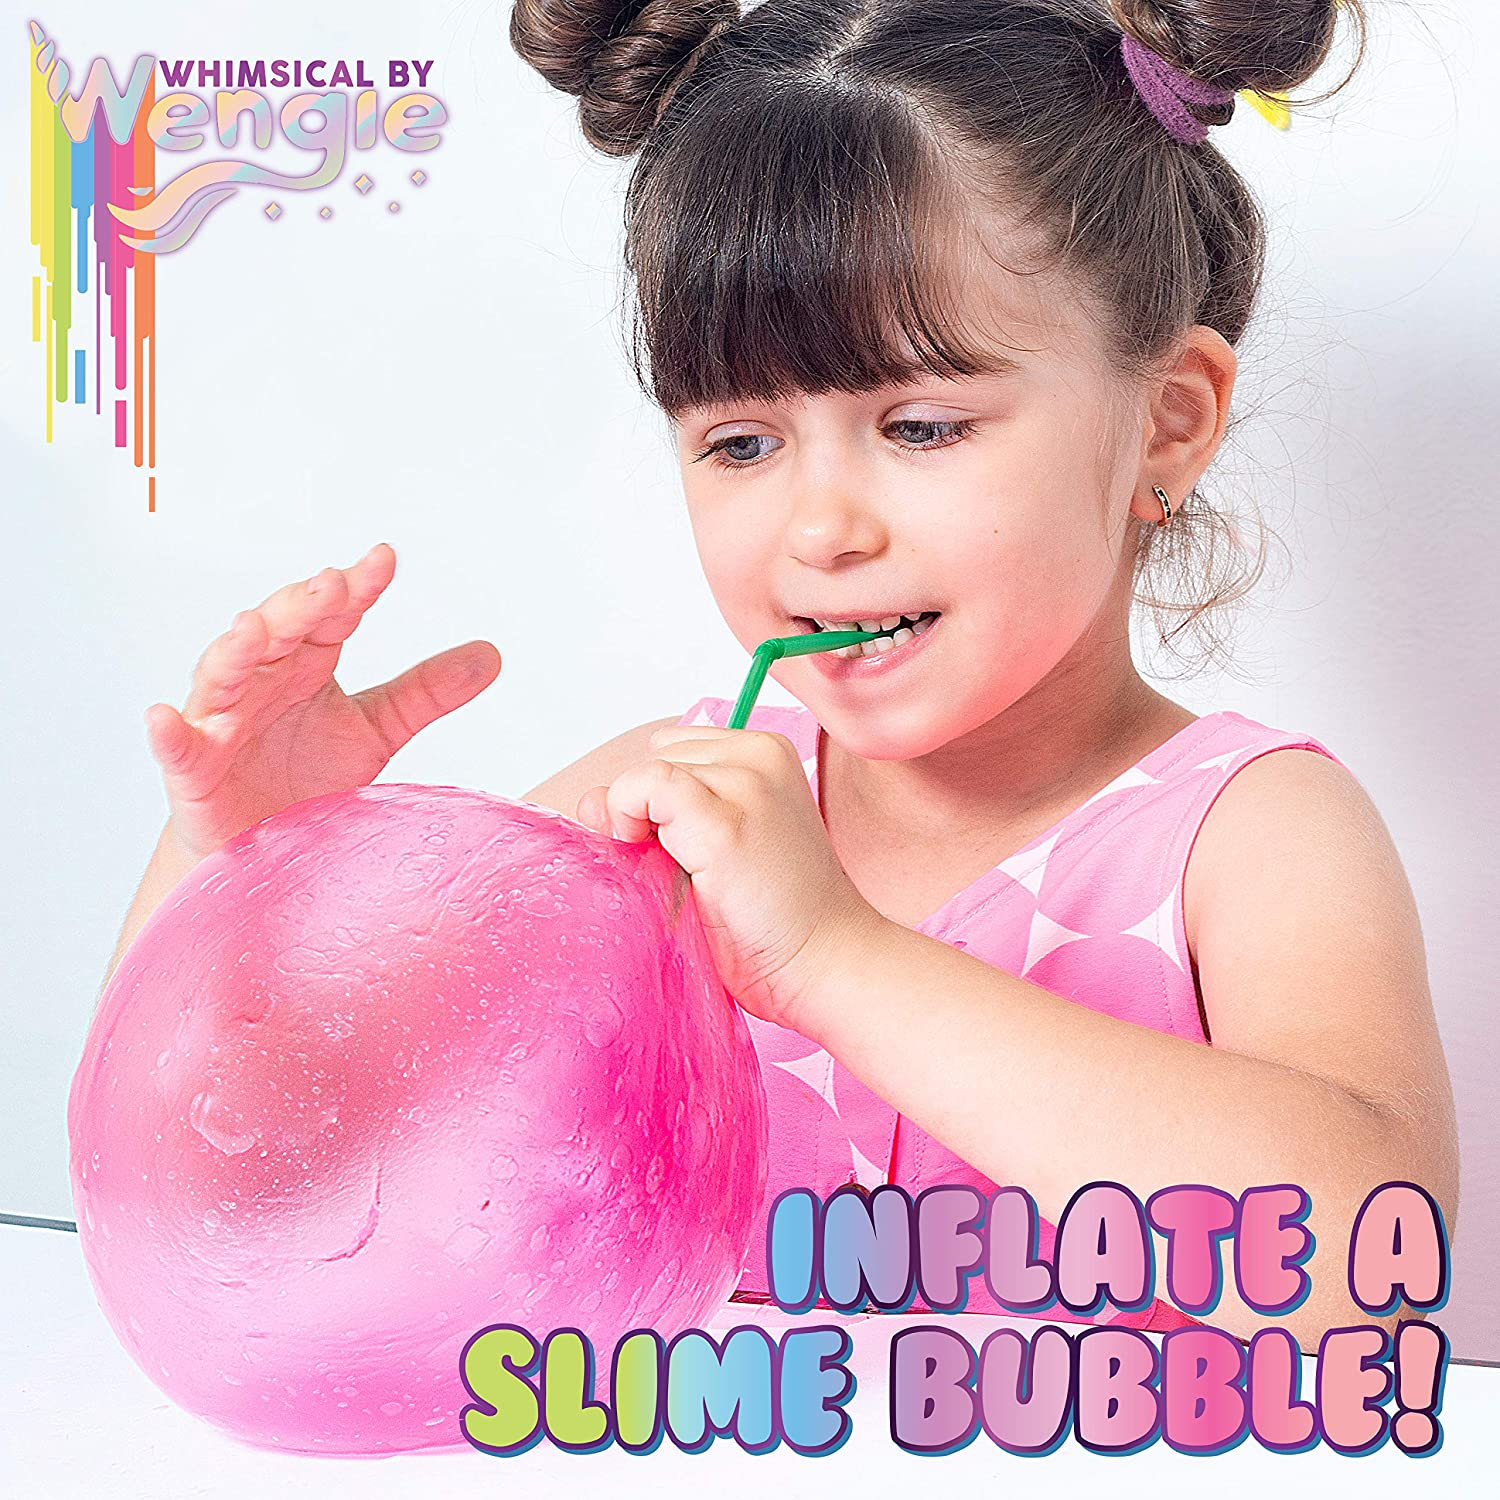 Wengie Whimsical Scented Slime Kit w/ Mystery Unicorn Charm - 4 Pack Glossy Fluffy Puffy Cloud Fruity Slime for Girls & Boys - STEM Educational Stress Relief Squishy Party Favors for Kids Age 6+